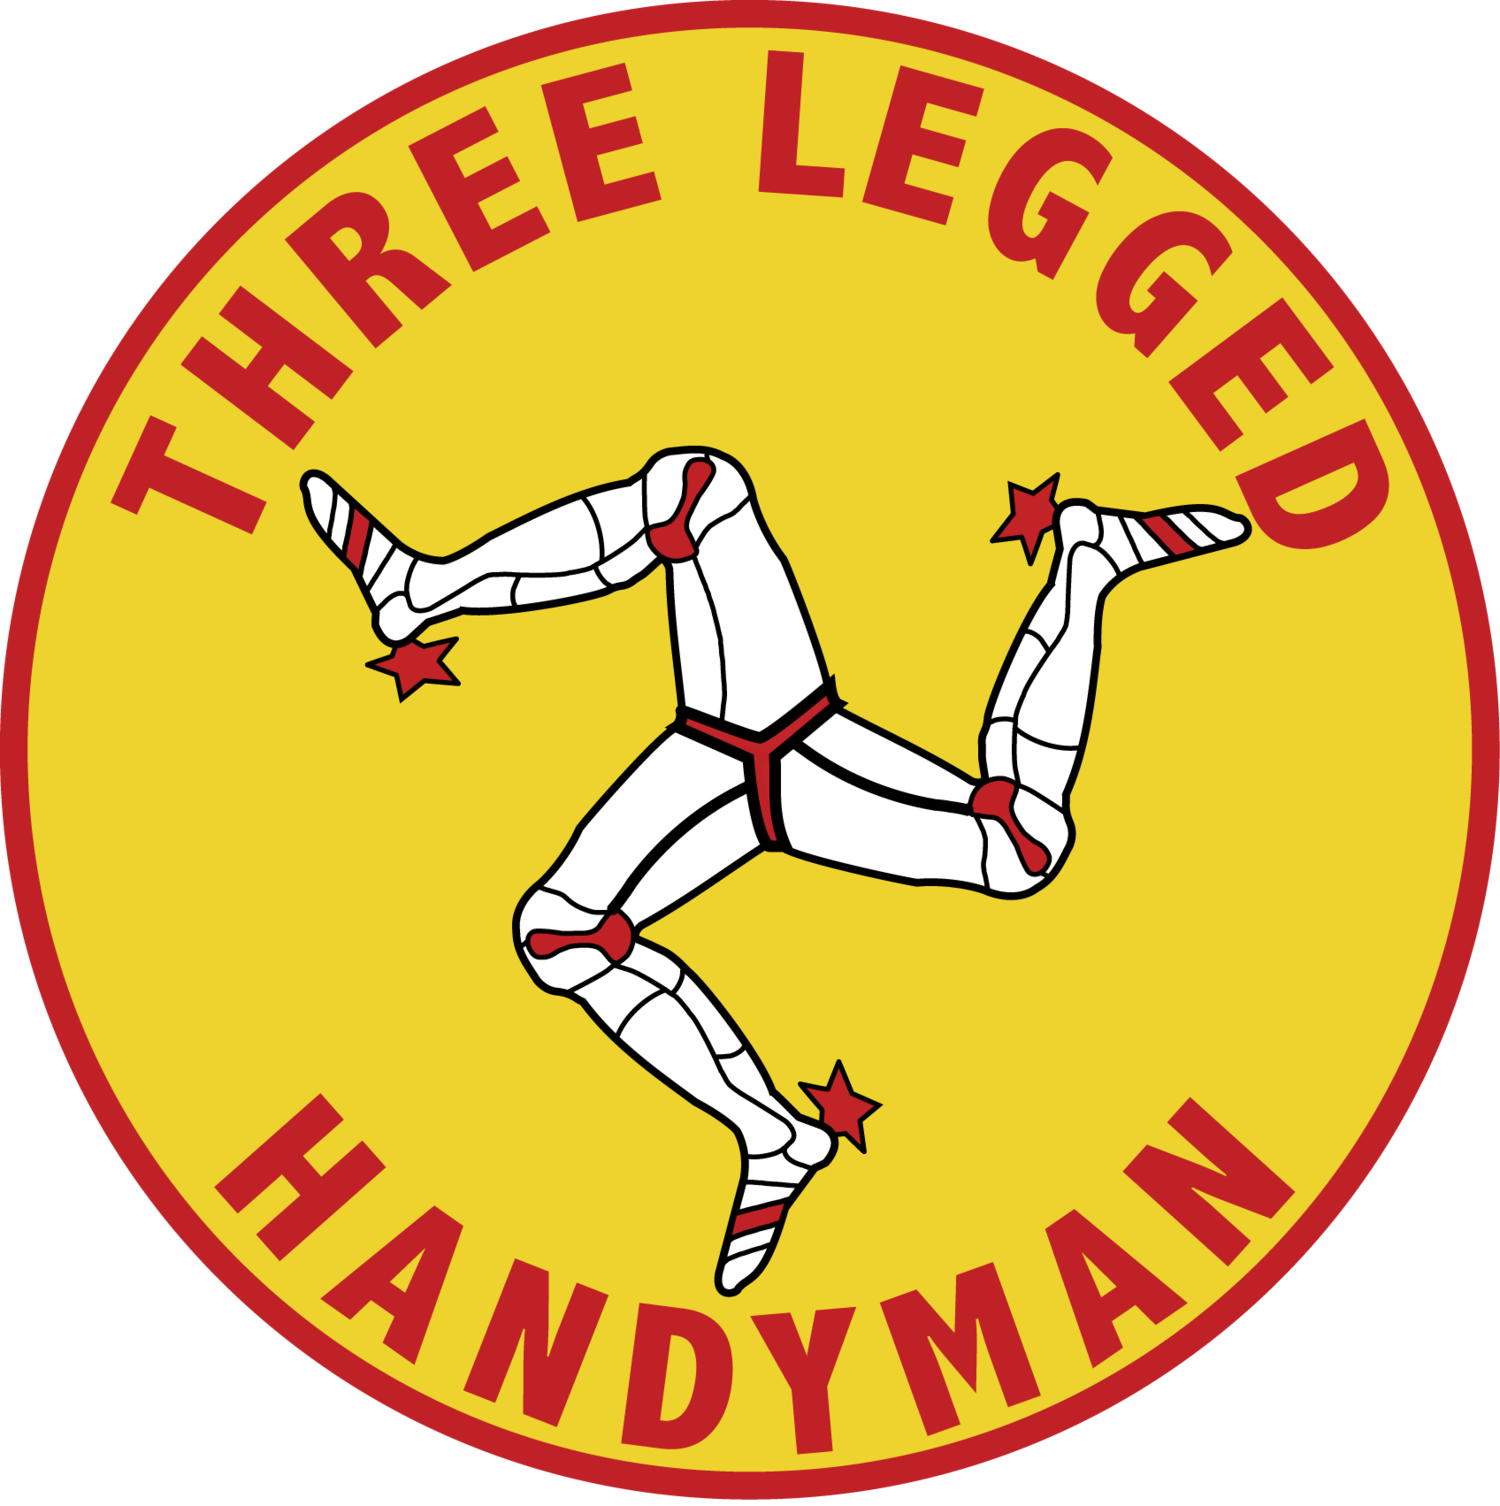 Three Legged Handyman - Mississauga Handyman Services